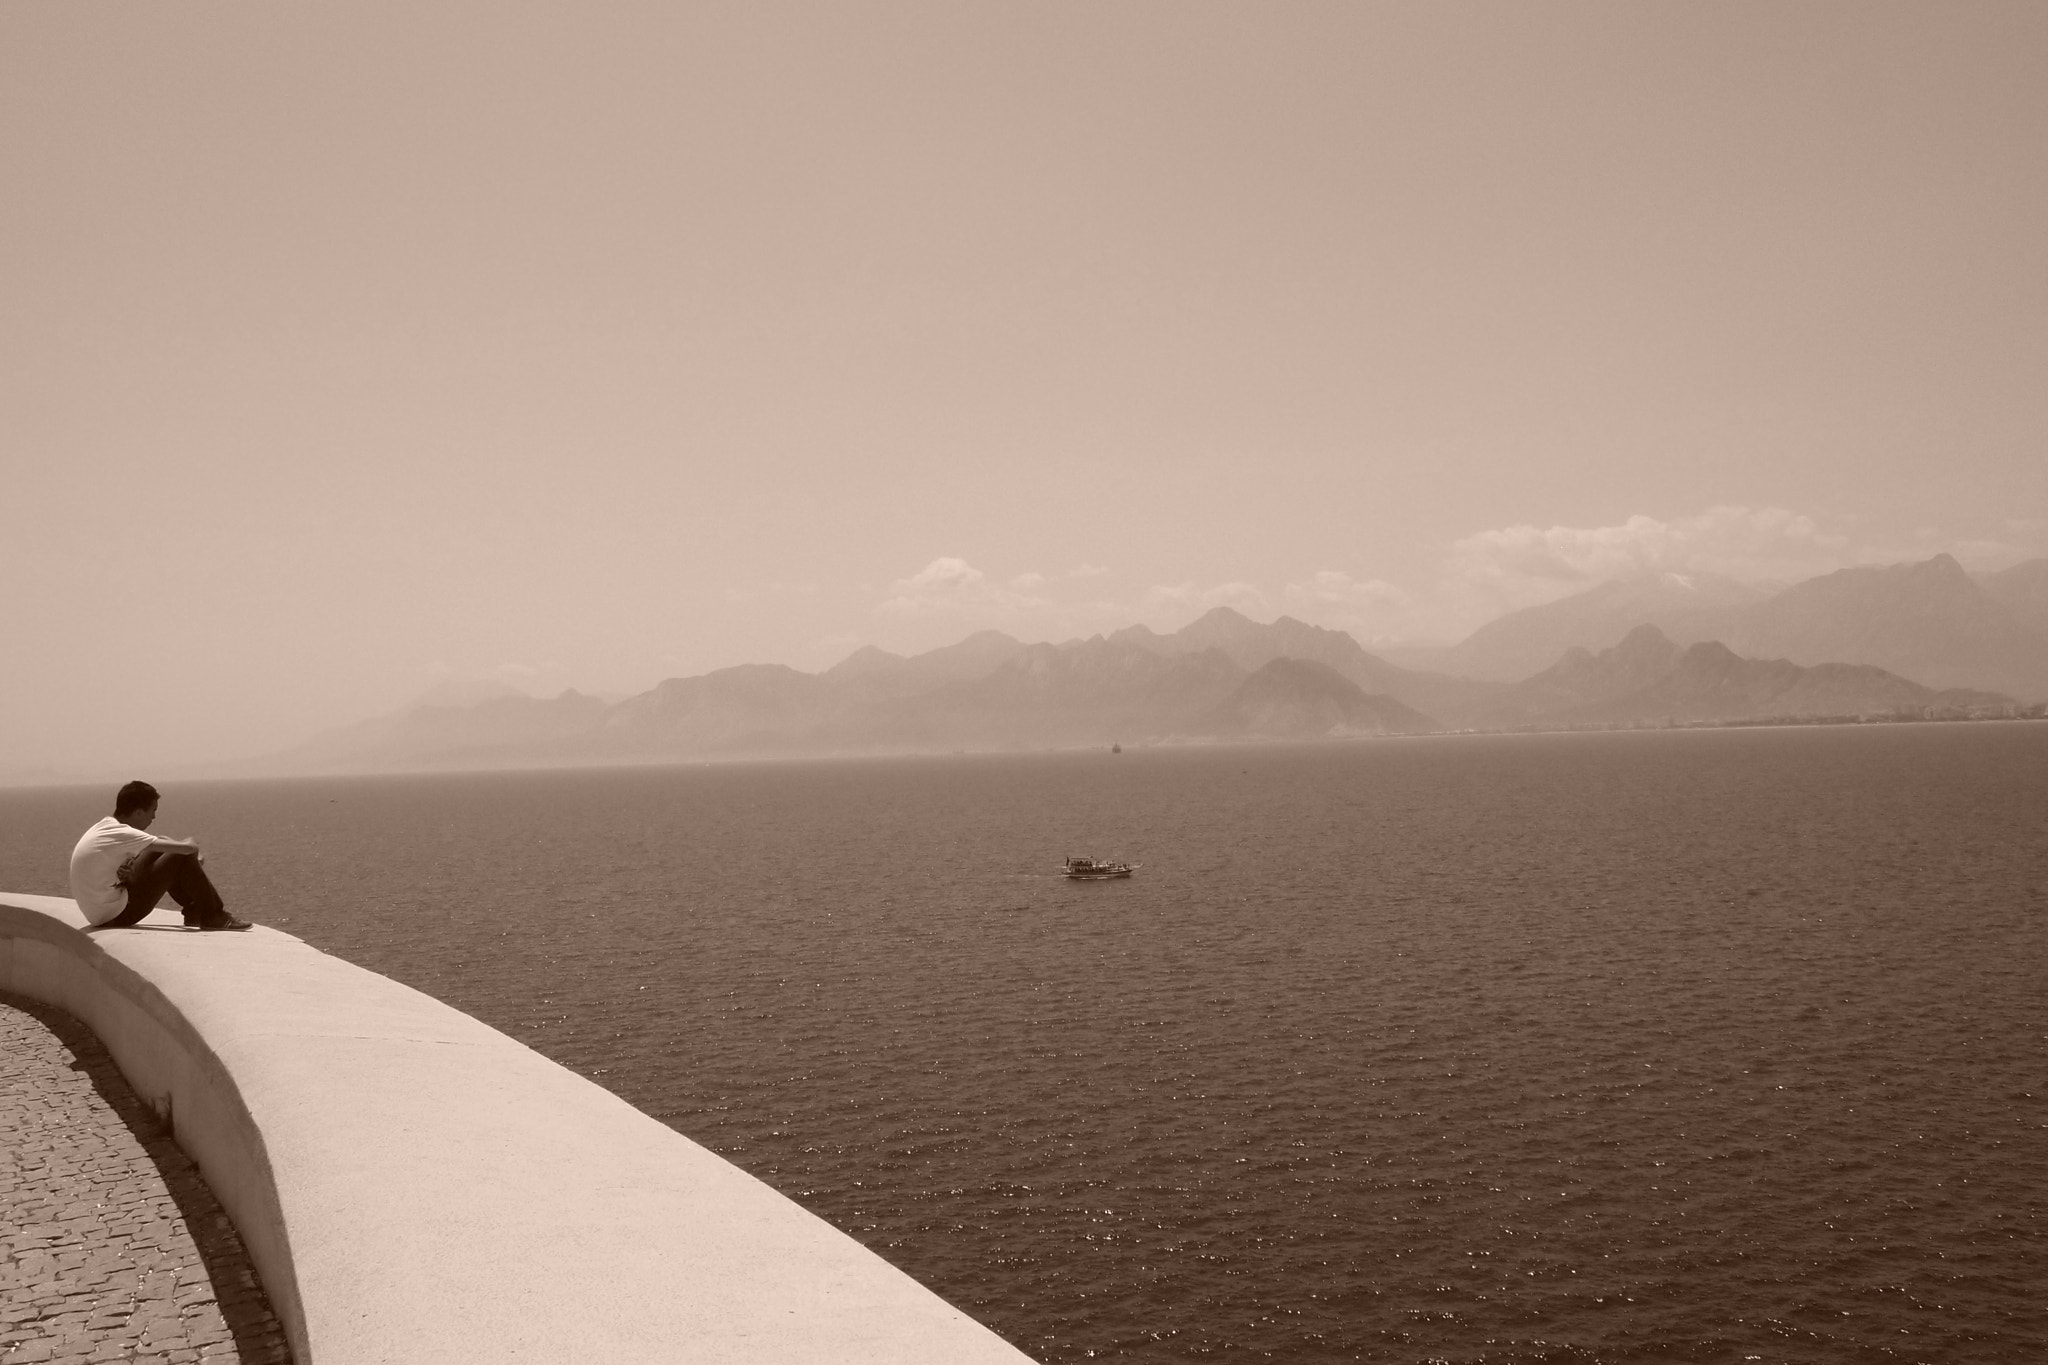 Photograph Overlooking the Mediterranean Sea by Alok Sharma on 500px